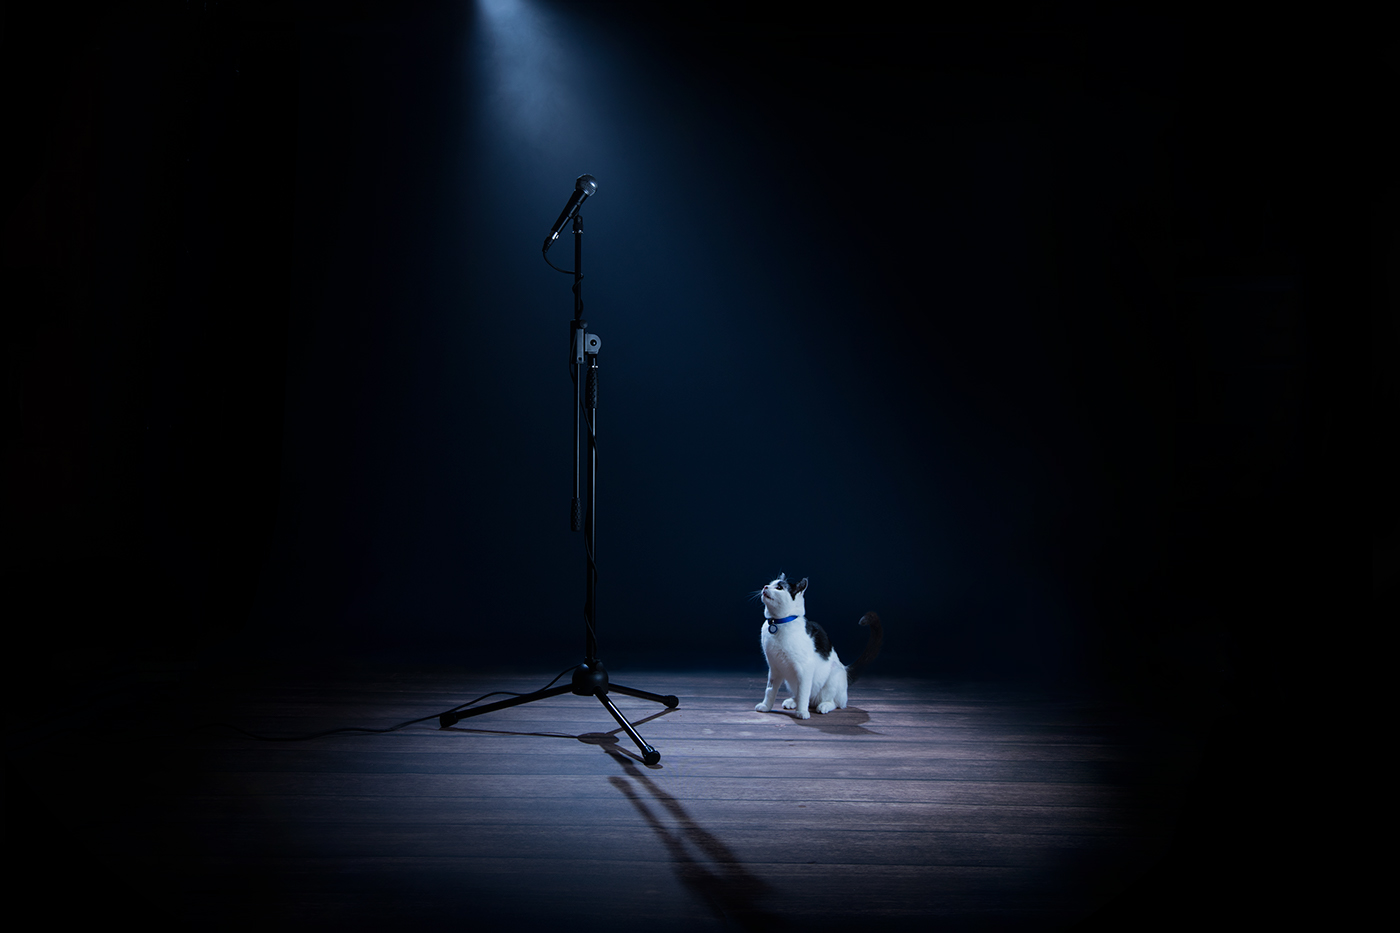 dogs cats animals UK animal abuse campaign